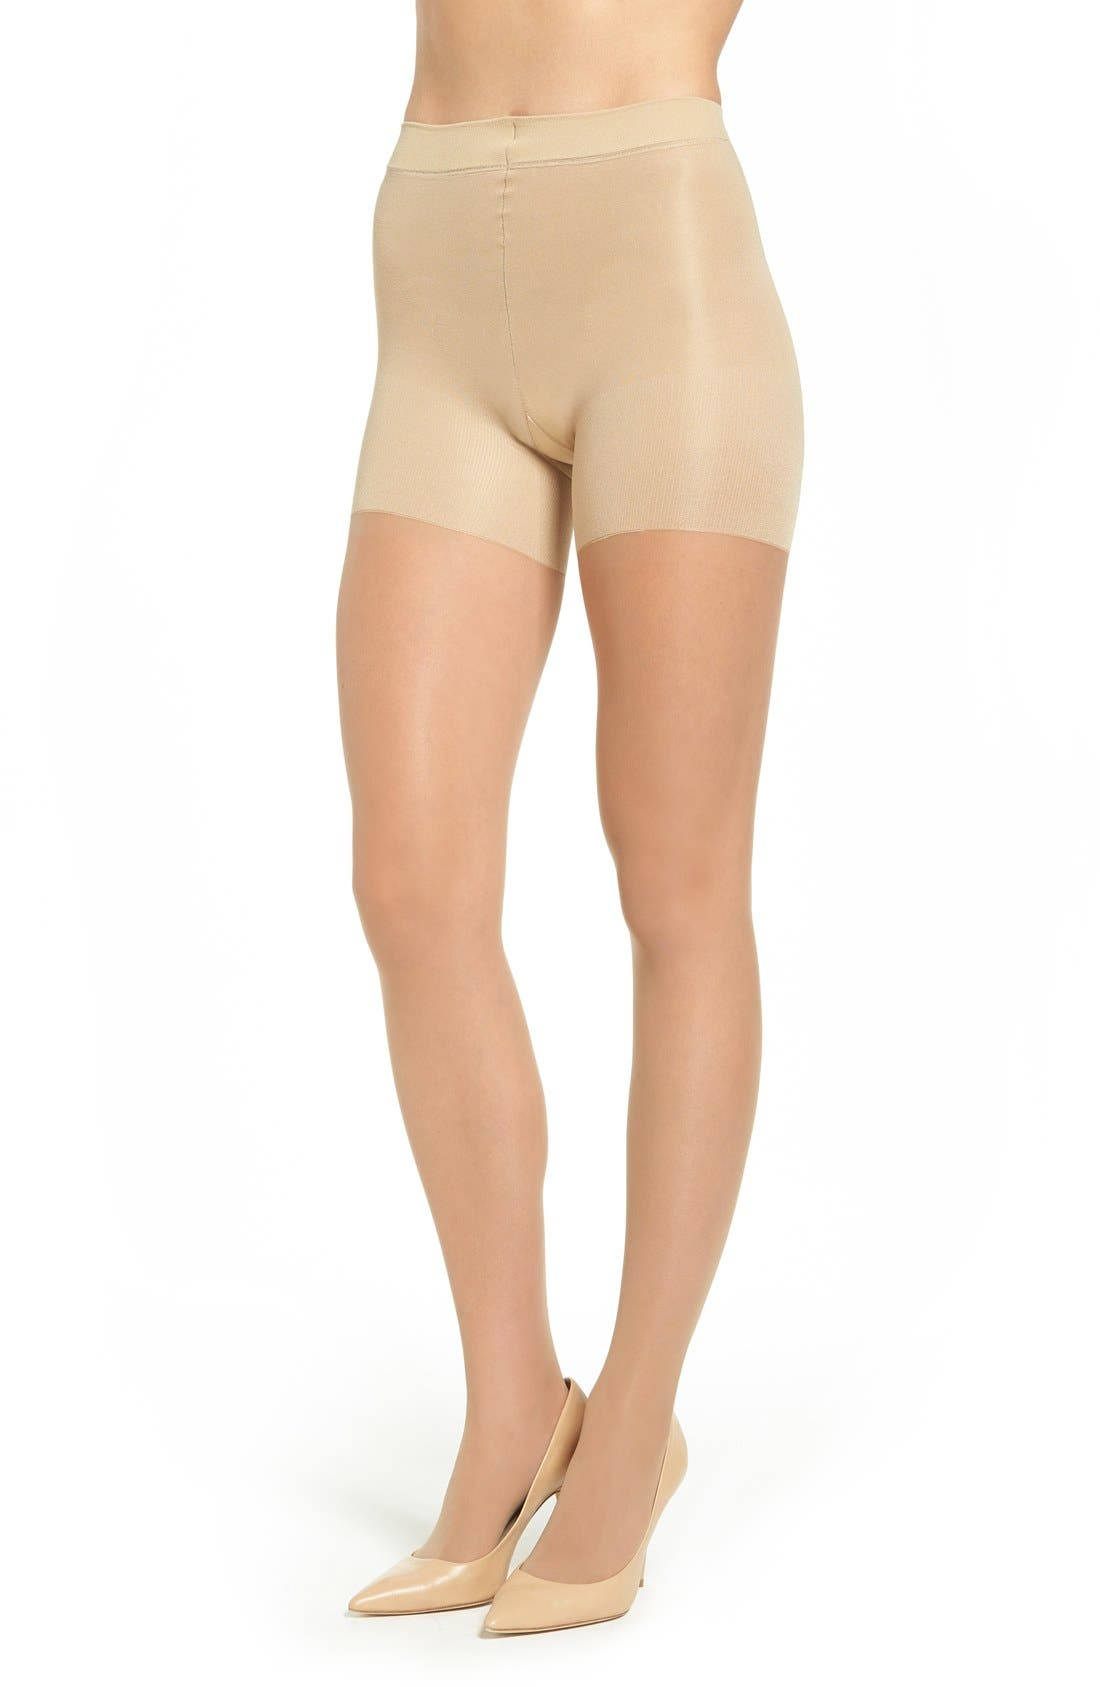 Alternate Image 1 Selected - SPANX® Leg Support Sheers (Regular & Plus Size)